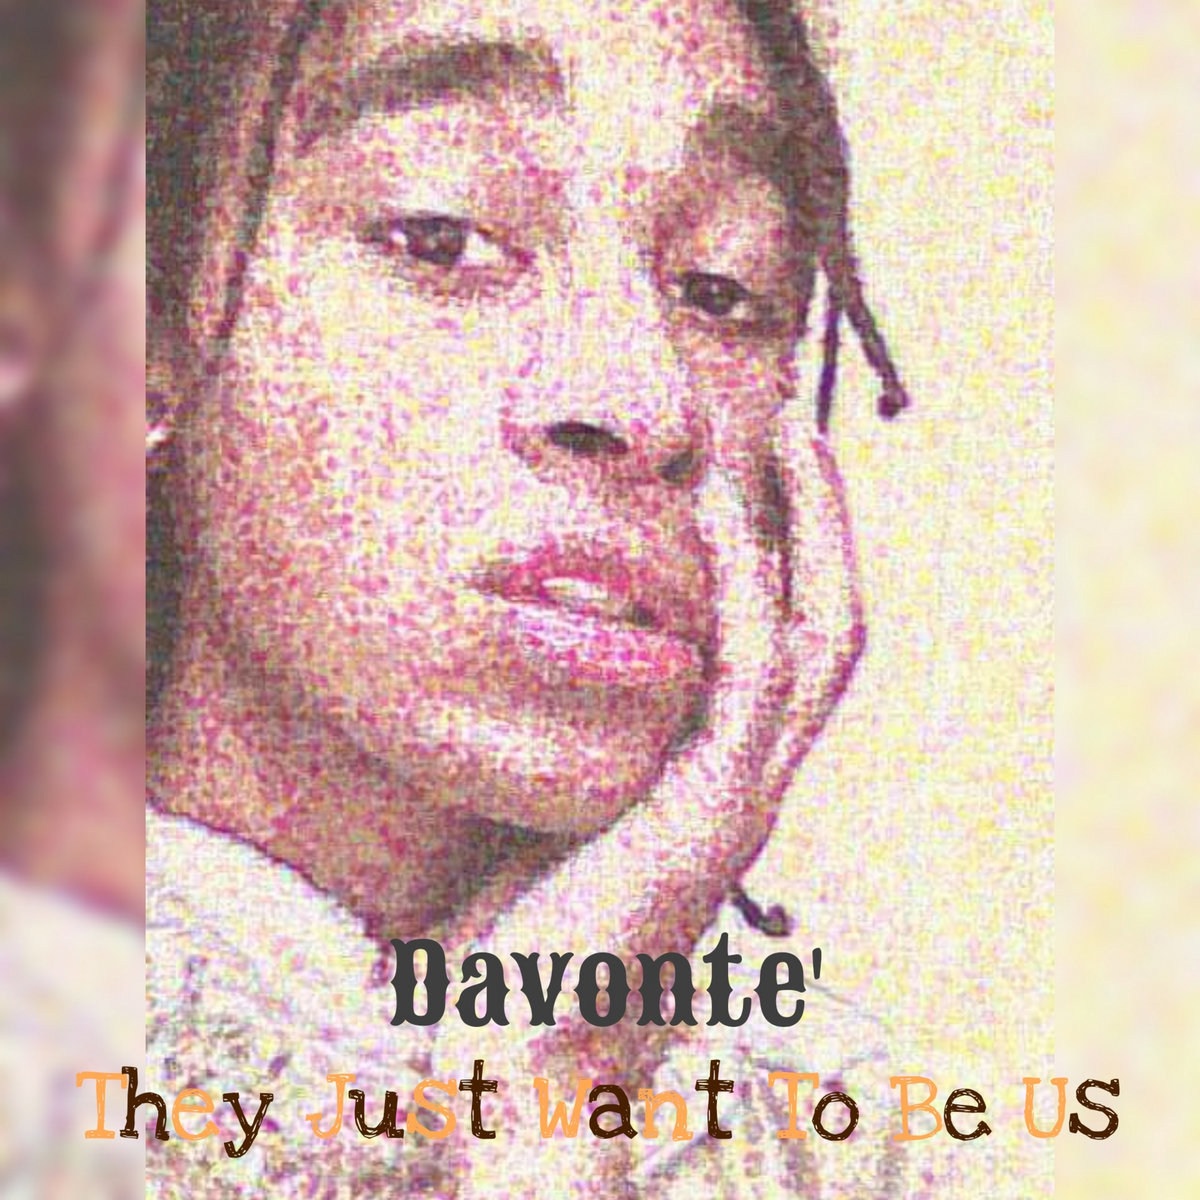 They Just Want To Be Us by Davonte'